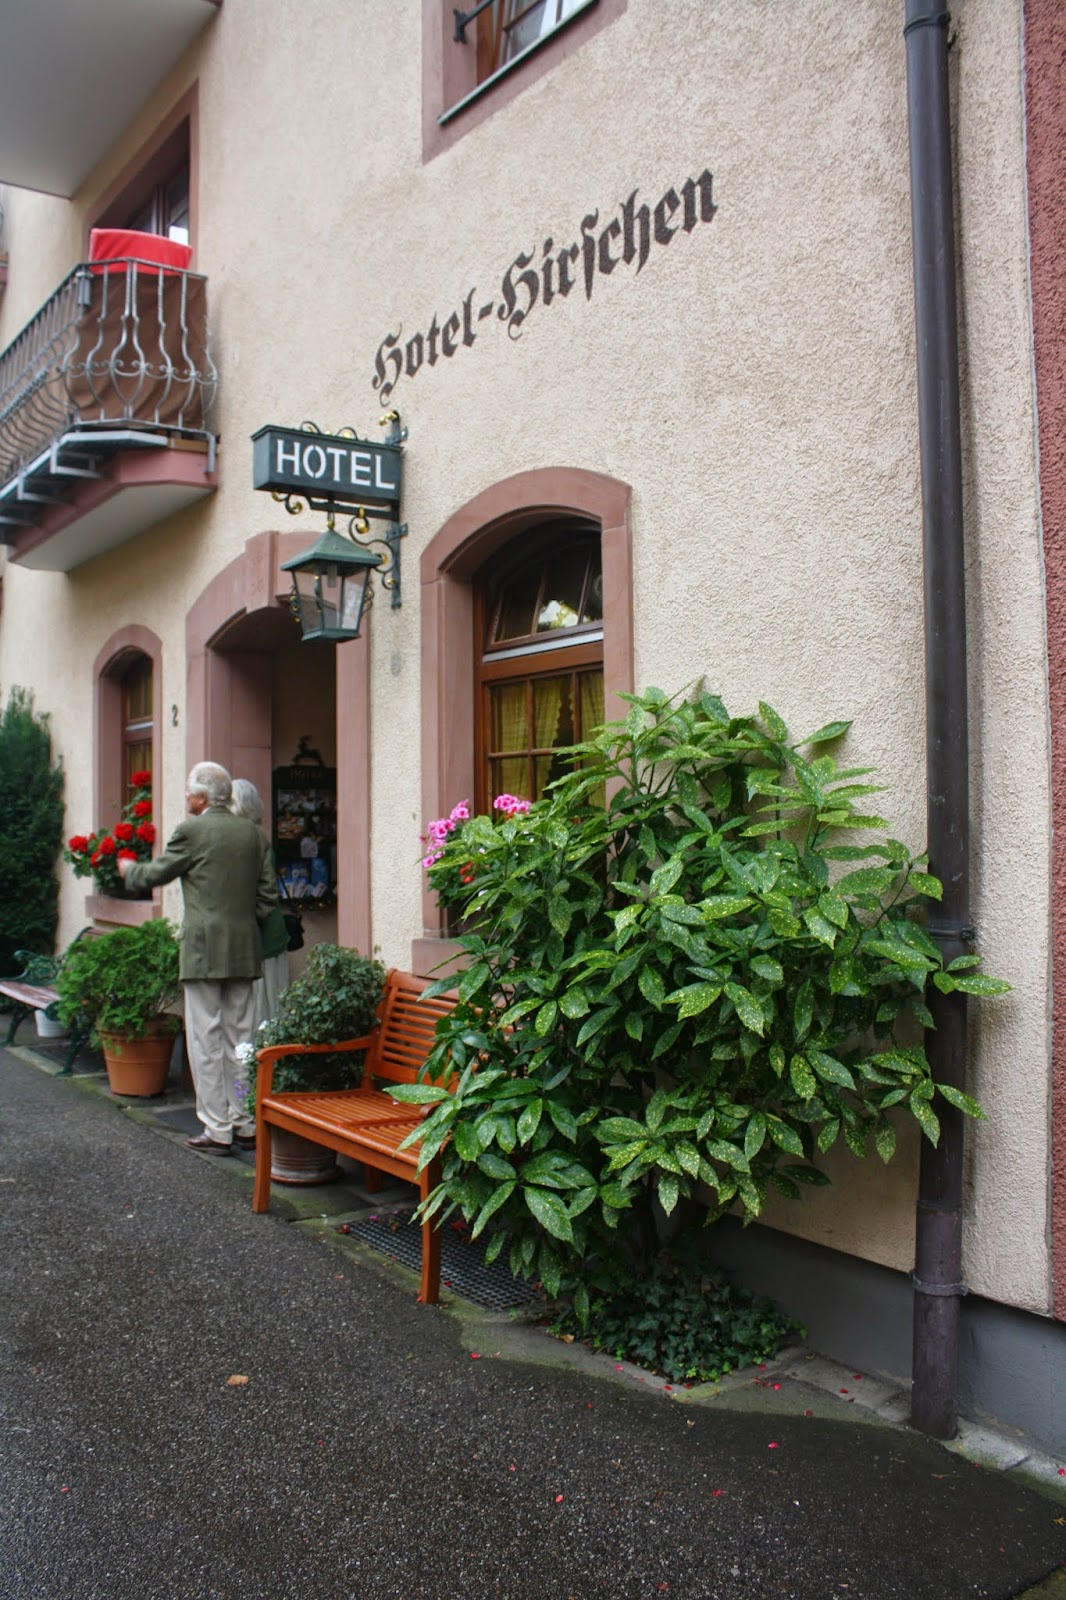 Hotel Zum Hirschen Staufen Germany Lace Up and Walk